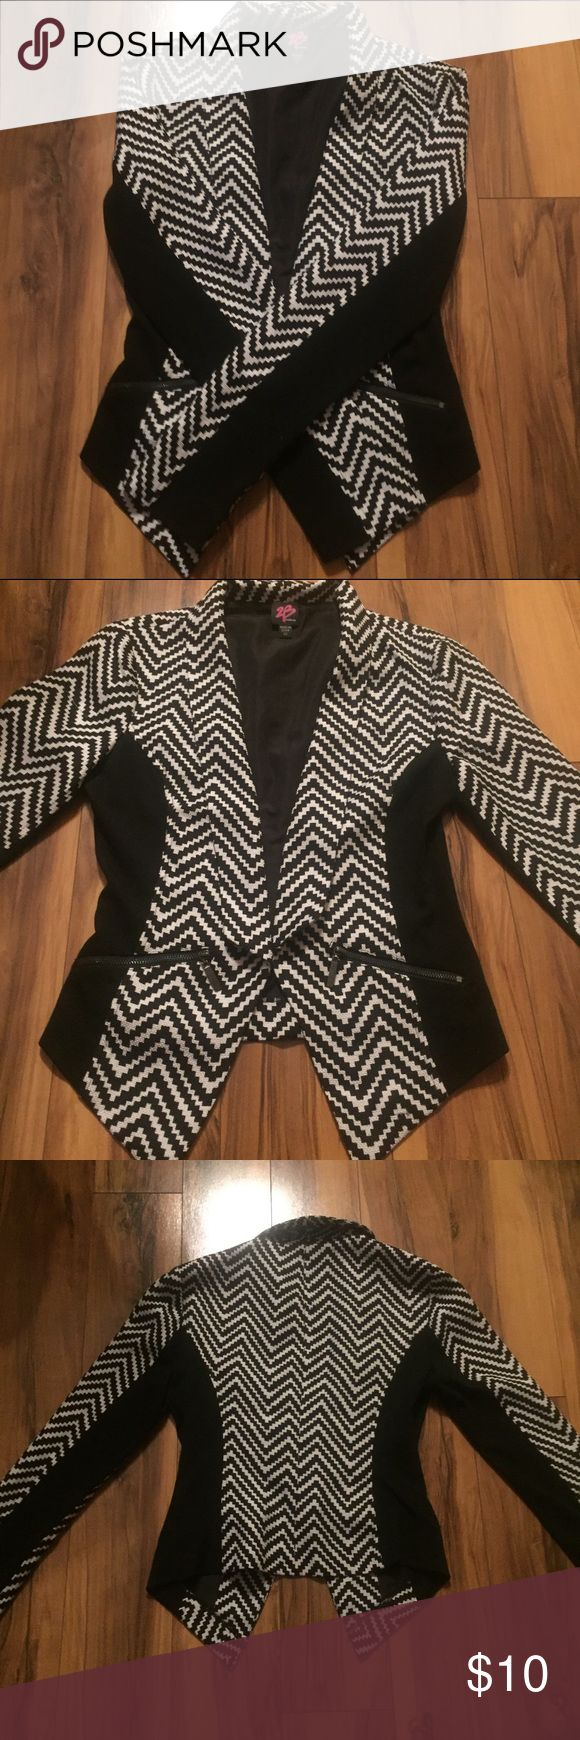 Bebe Blazer I love this chevron black and white blazer! Its from Bebe size xs. The design is sexy and slimming. There are 2 zippers on front, not real pockets. Wear with skinny black ankle pants and strappy heels. There is a small defect in the back upper arm, shown in pictures above. bebe Jackets & Coats Blazers